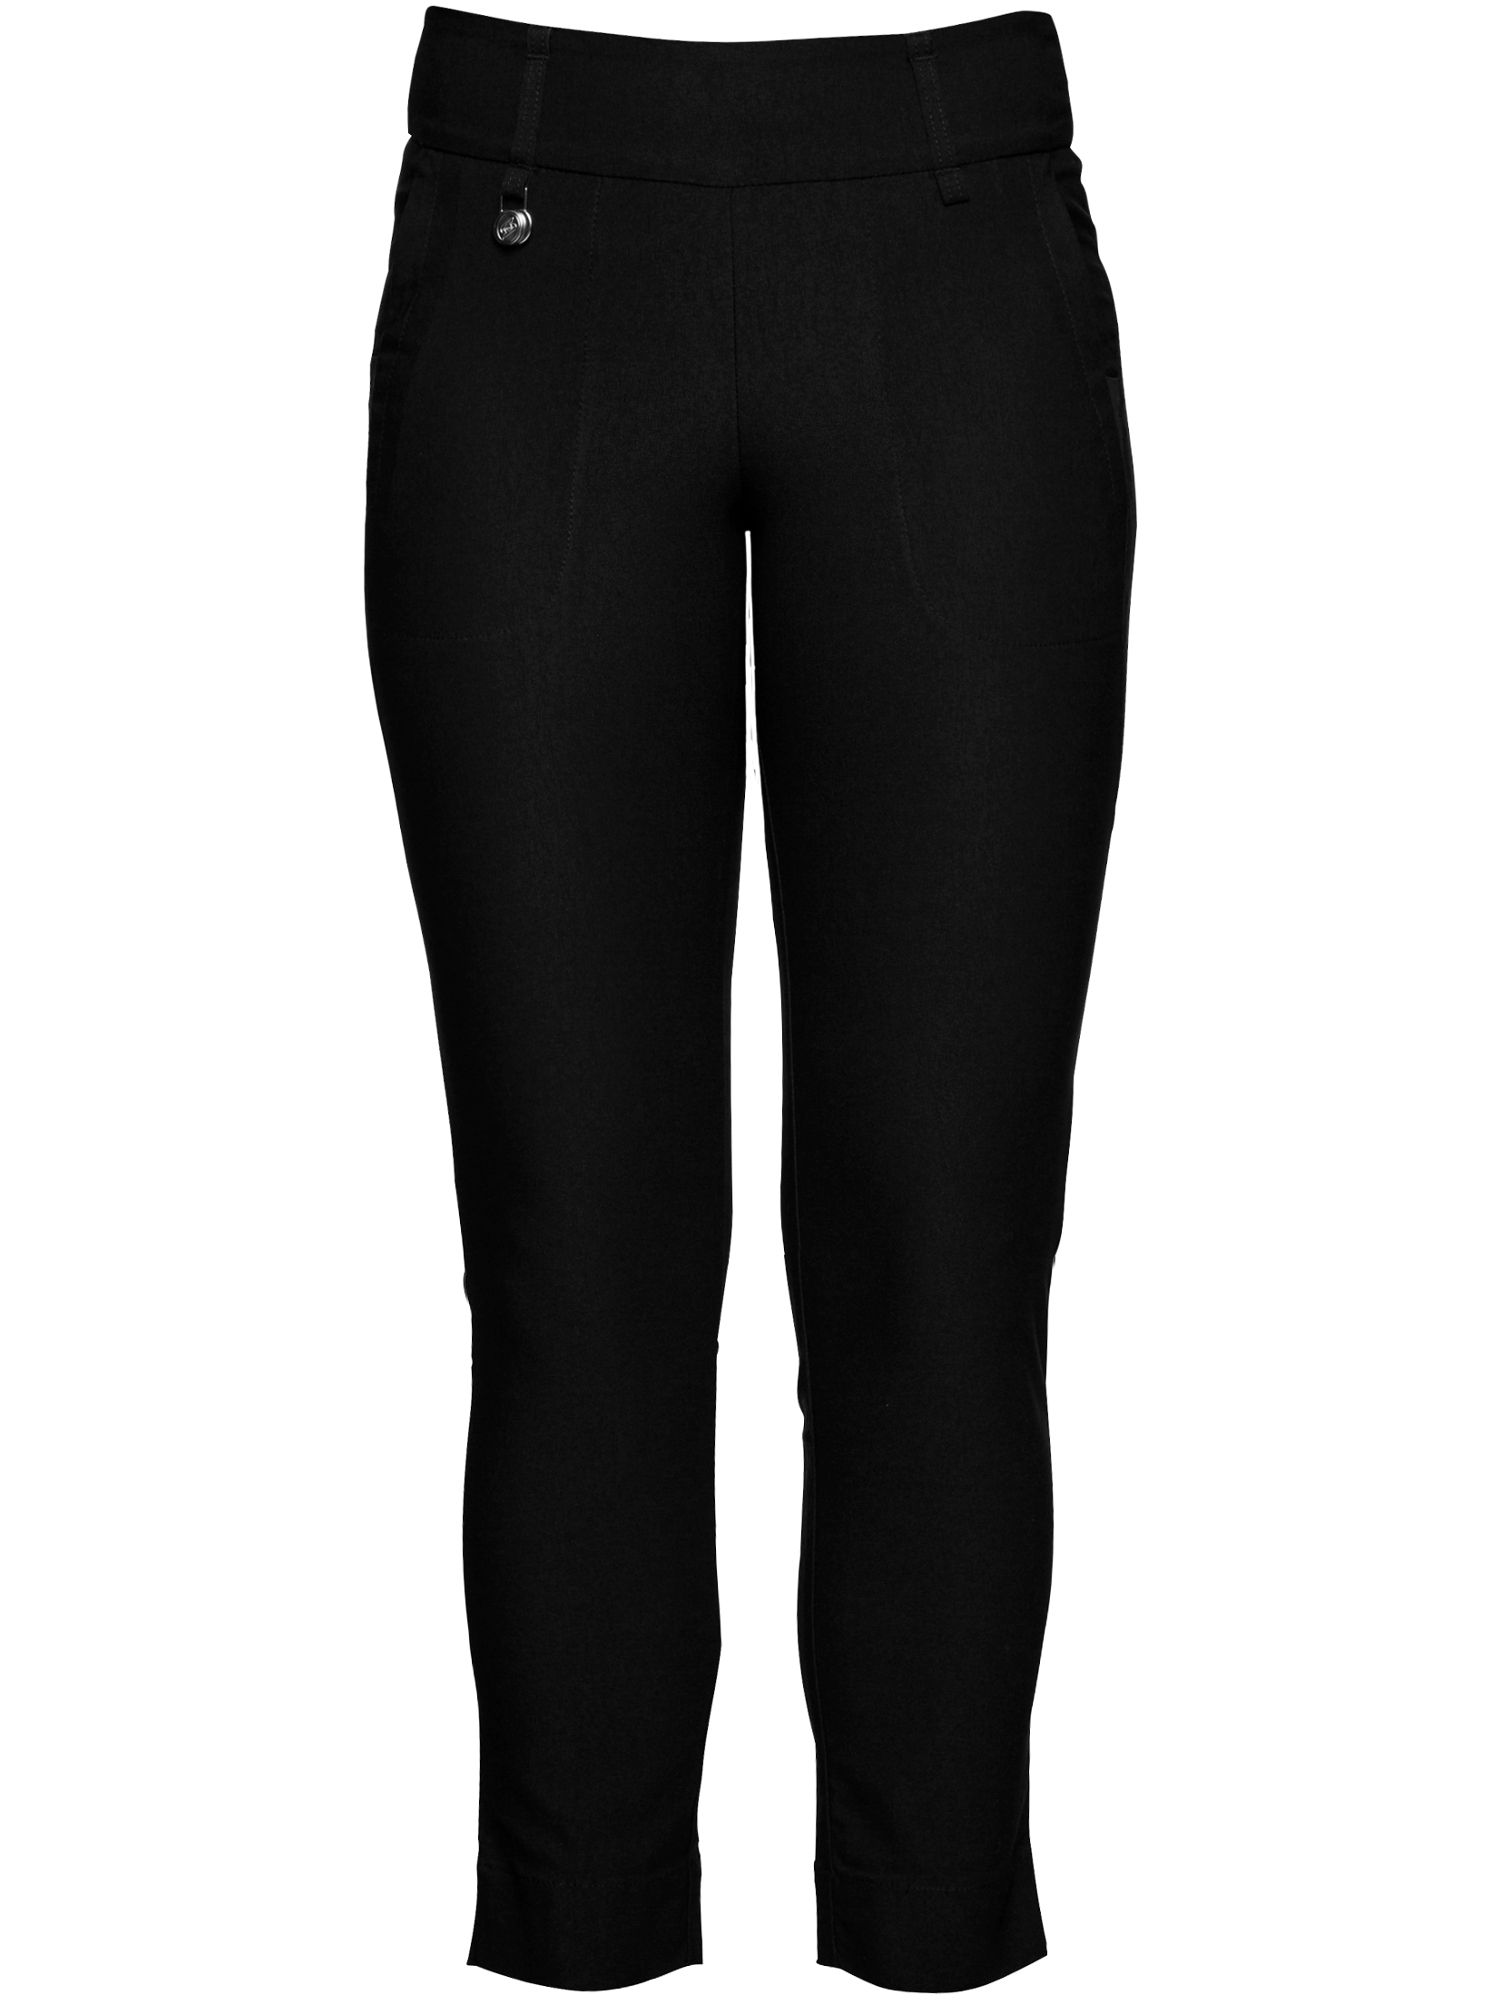 Daily Sports Daily Sports Magic trousers, Black